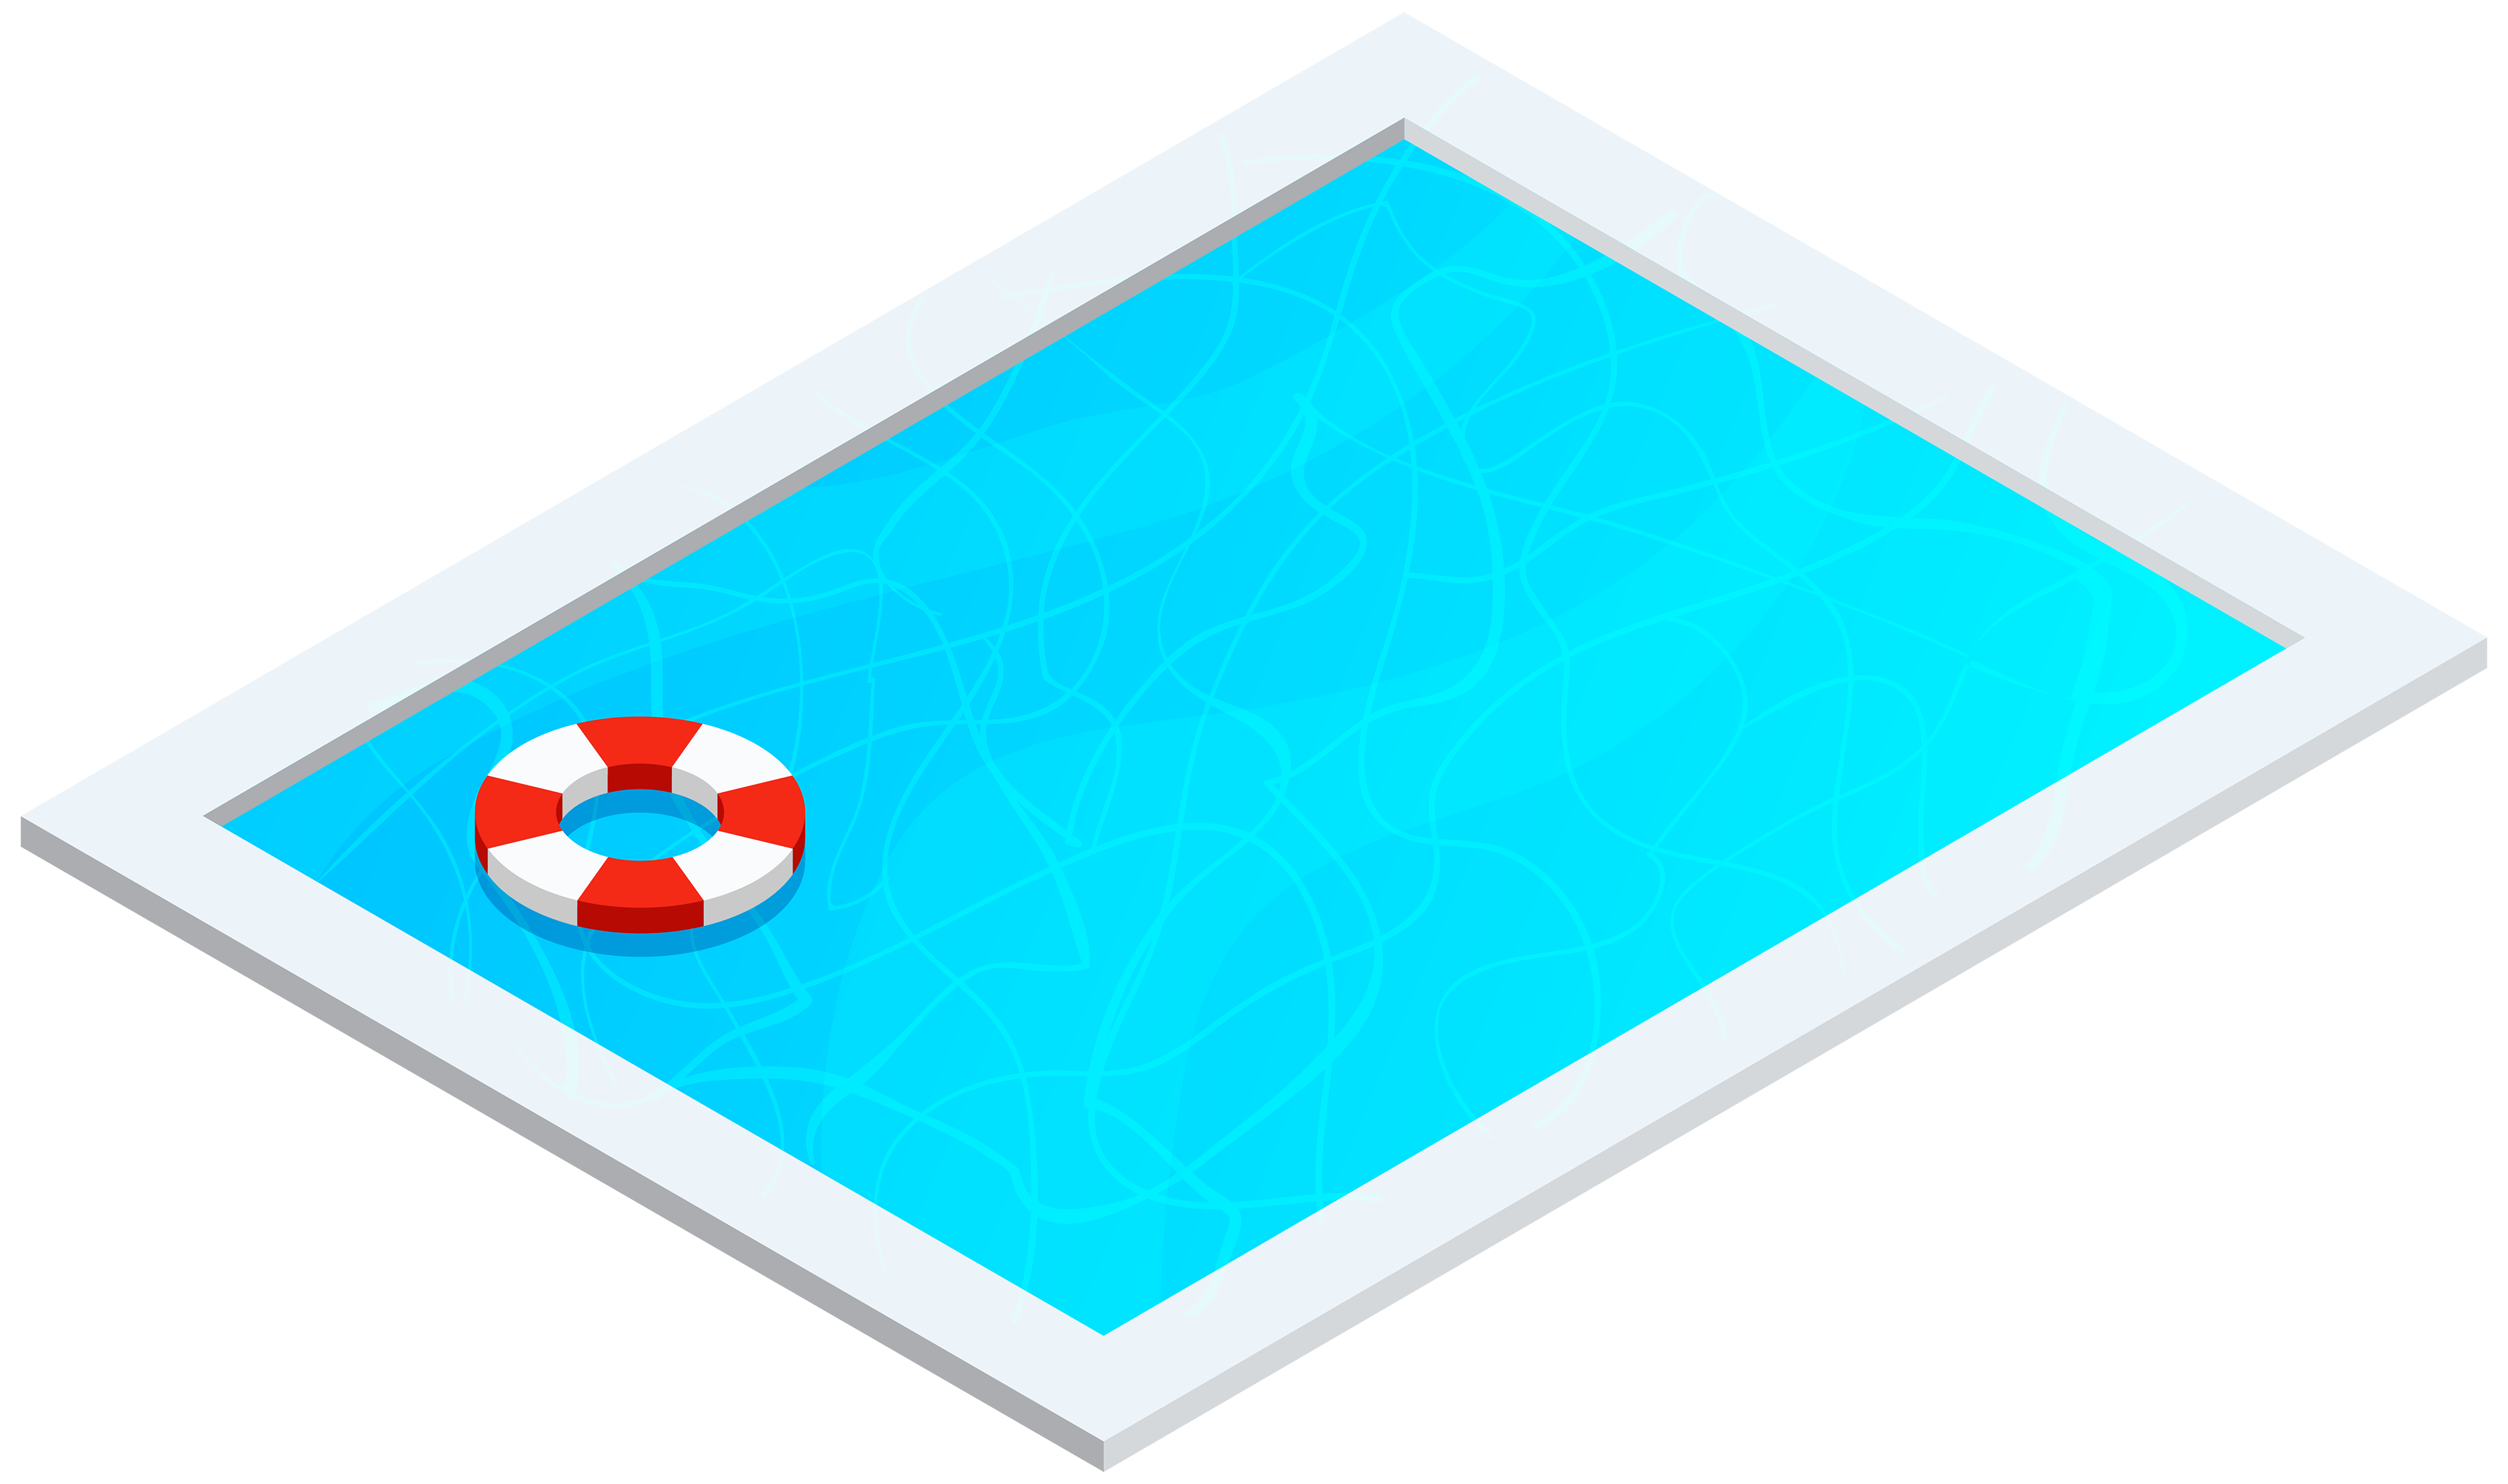 4000x2367 Swimming Pool Png Clipart